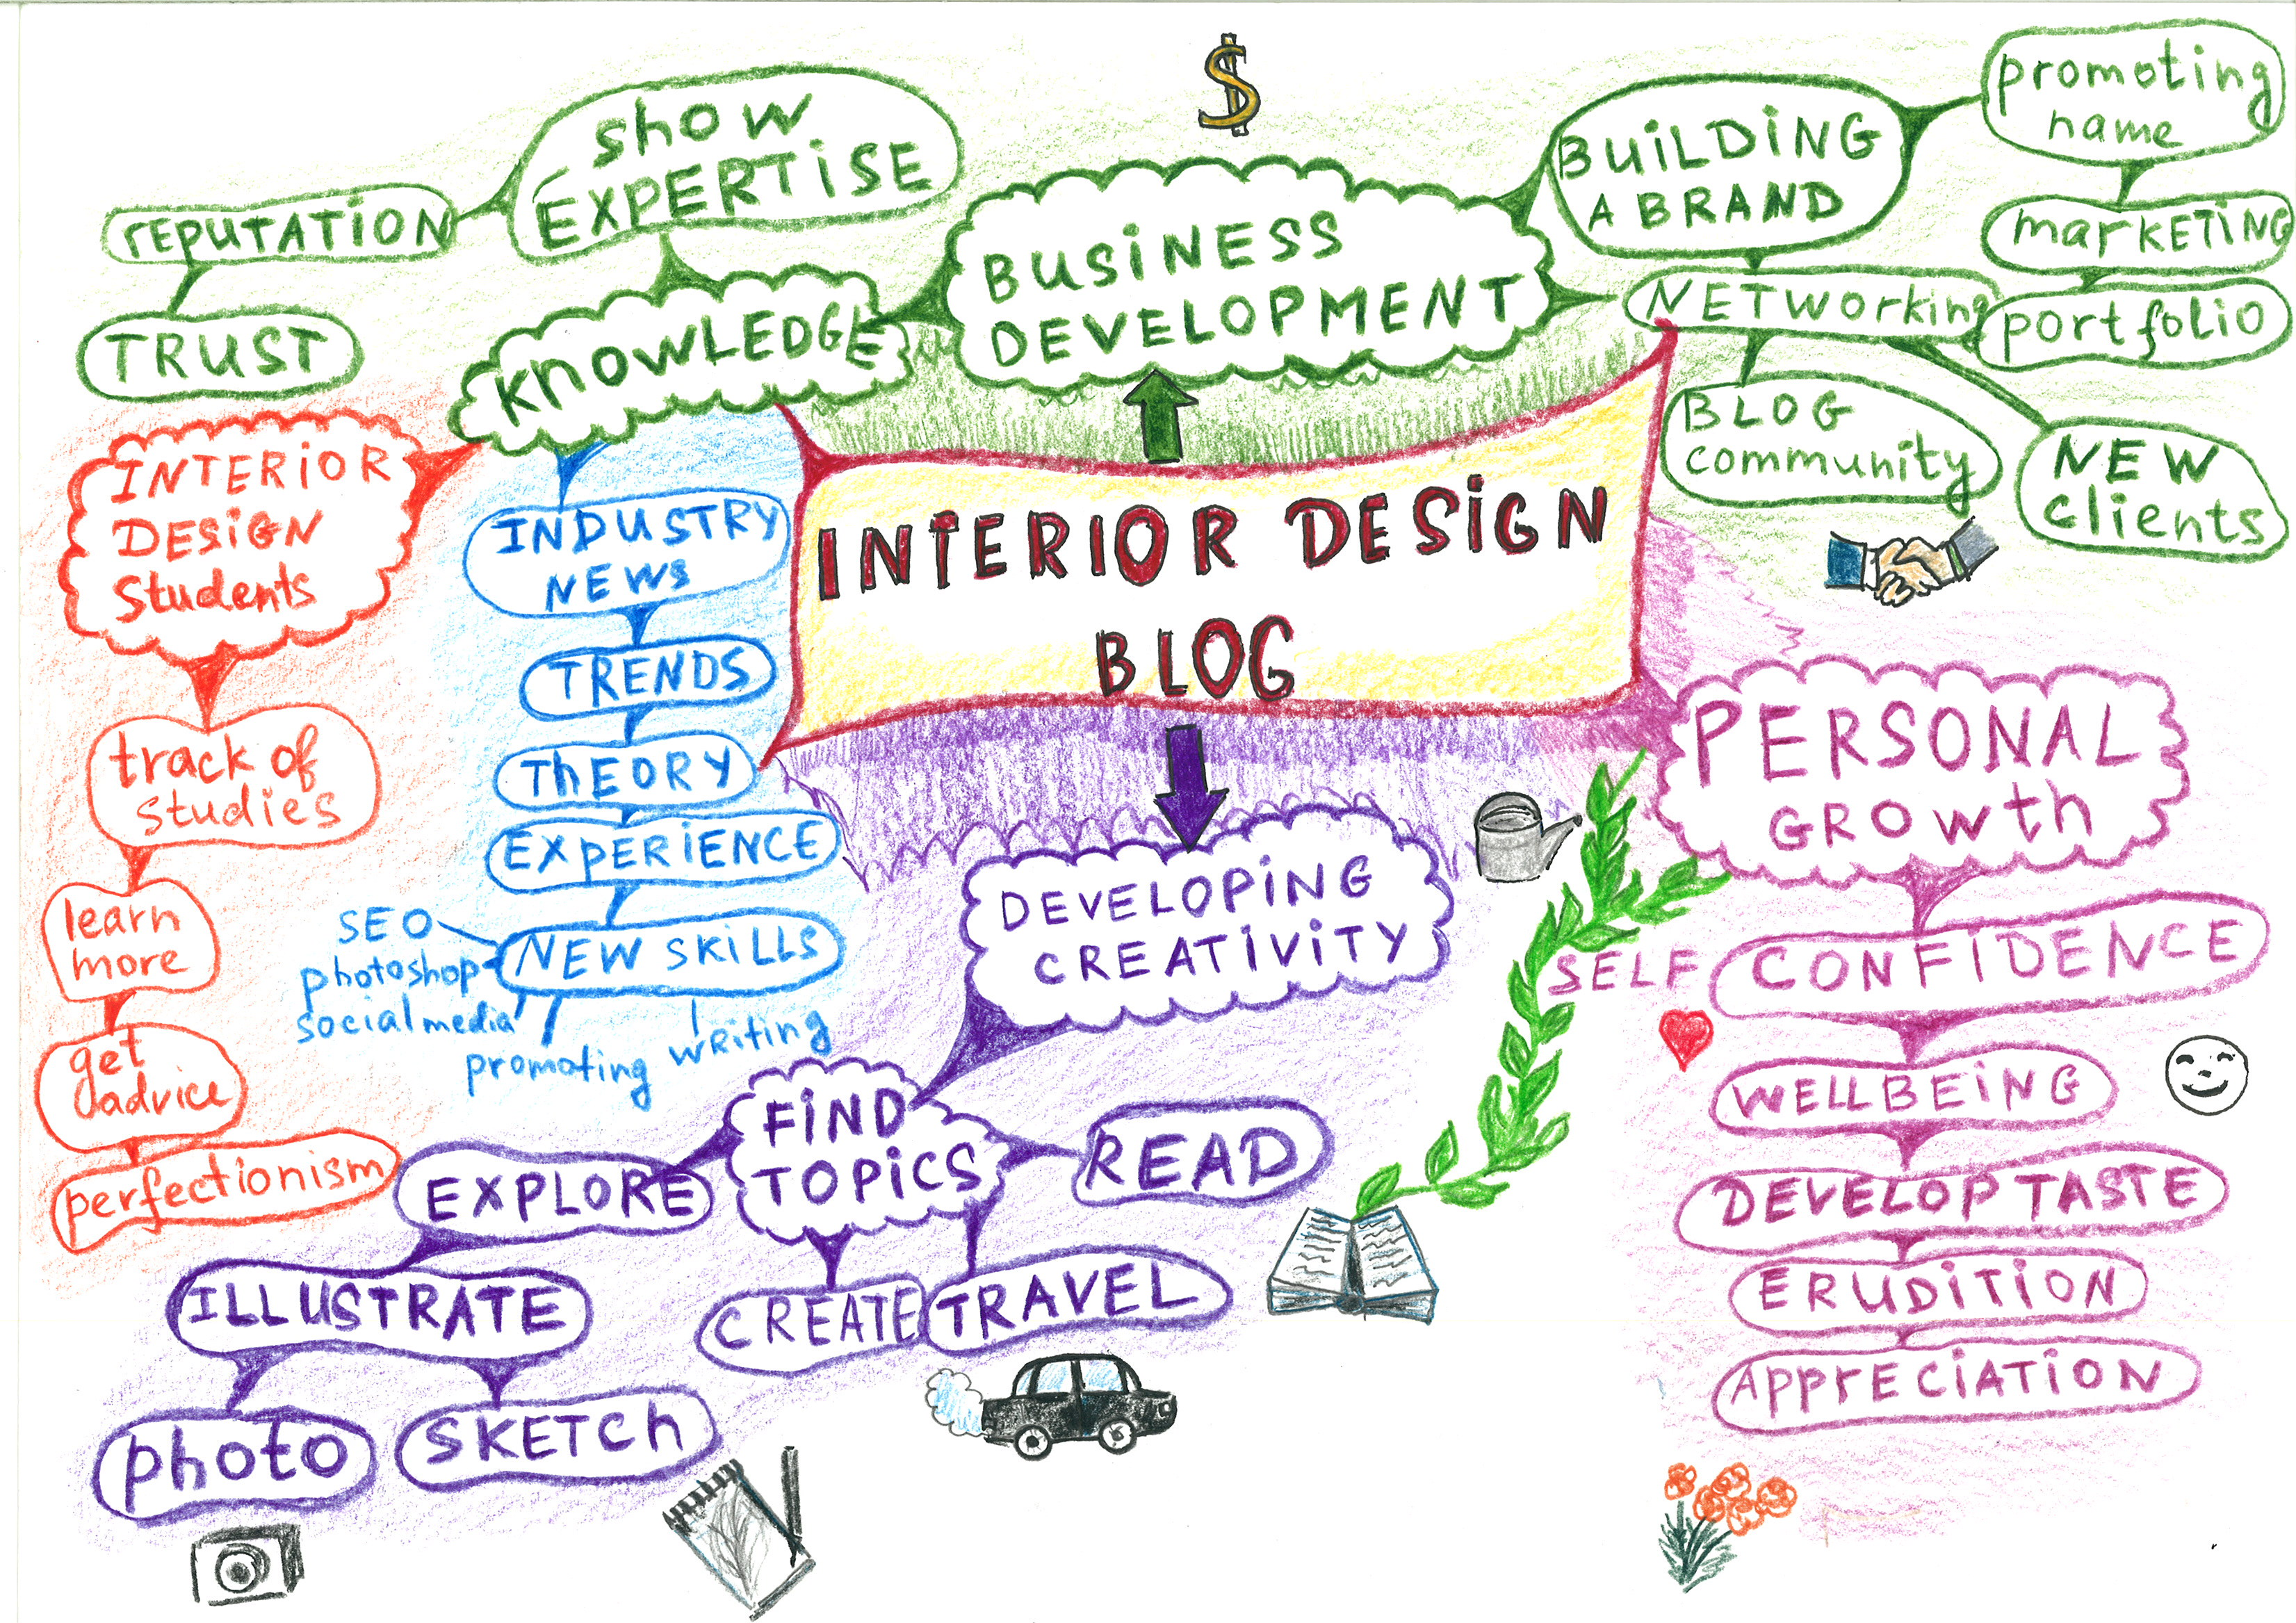 Why Blogging Will Be Crucially Important For Interior Designers In 2013